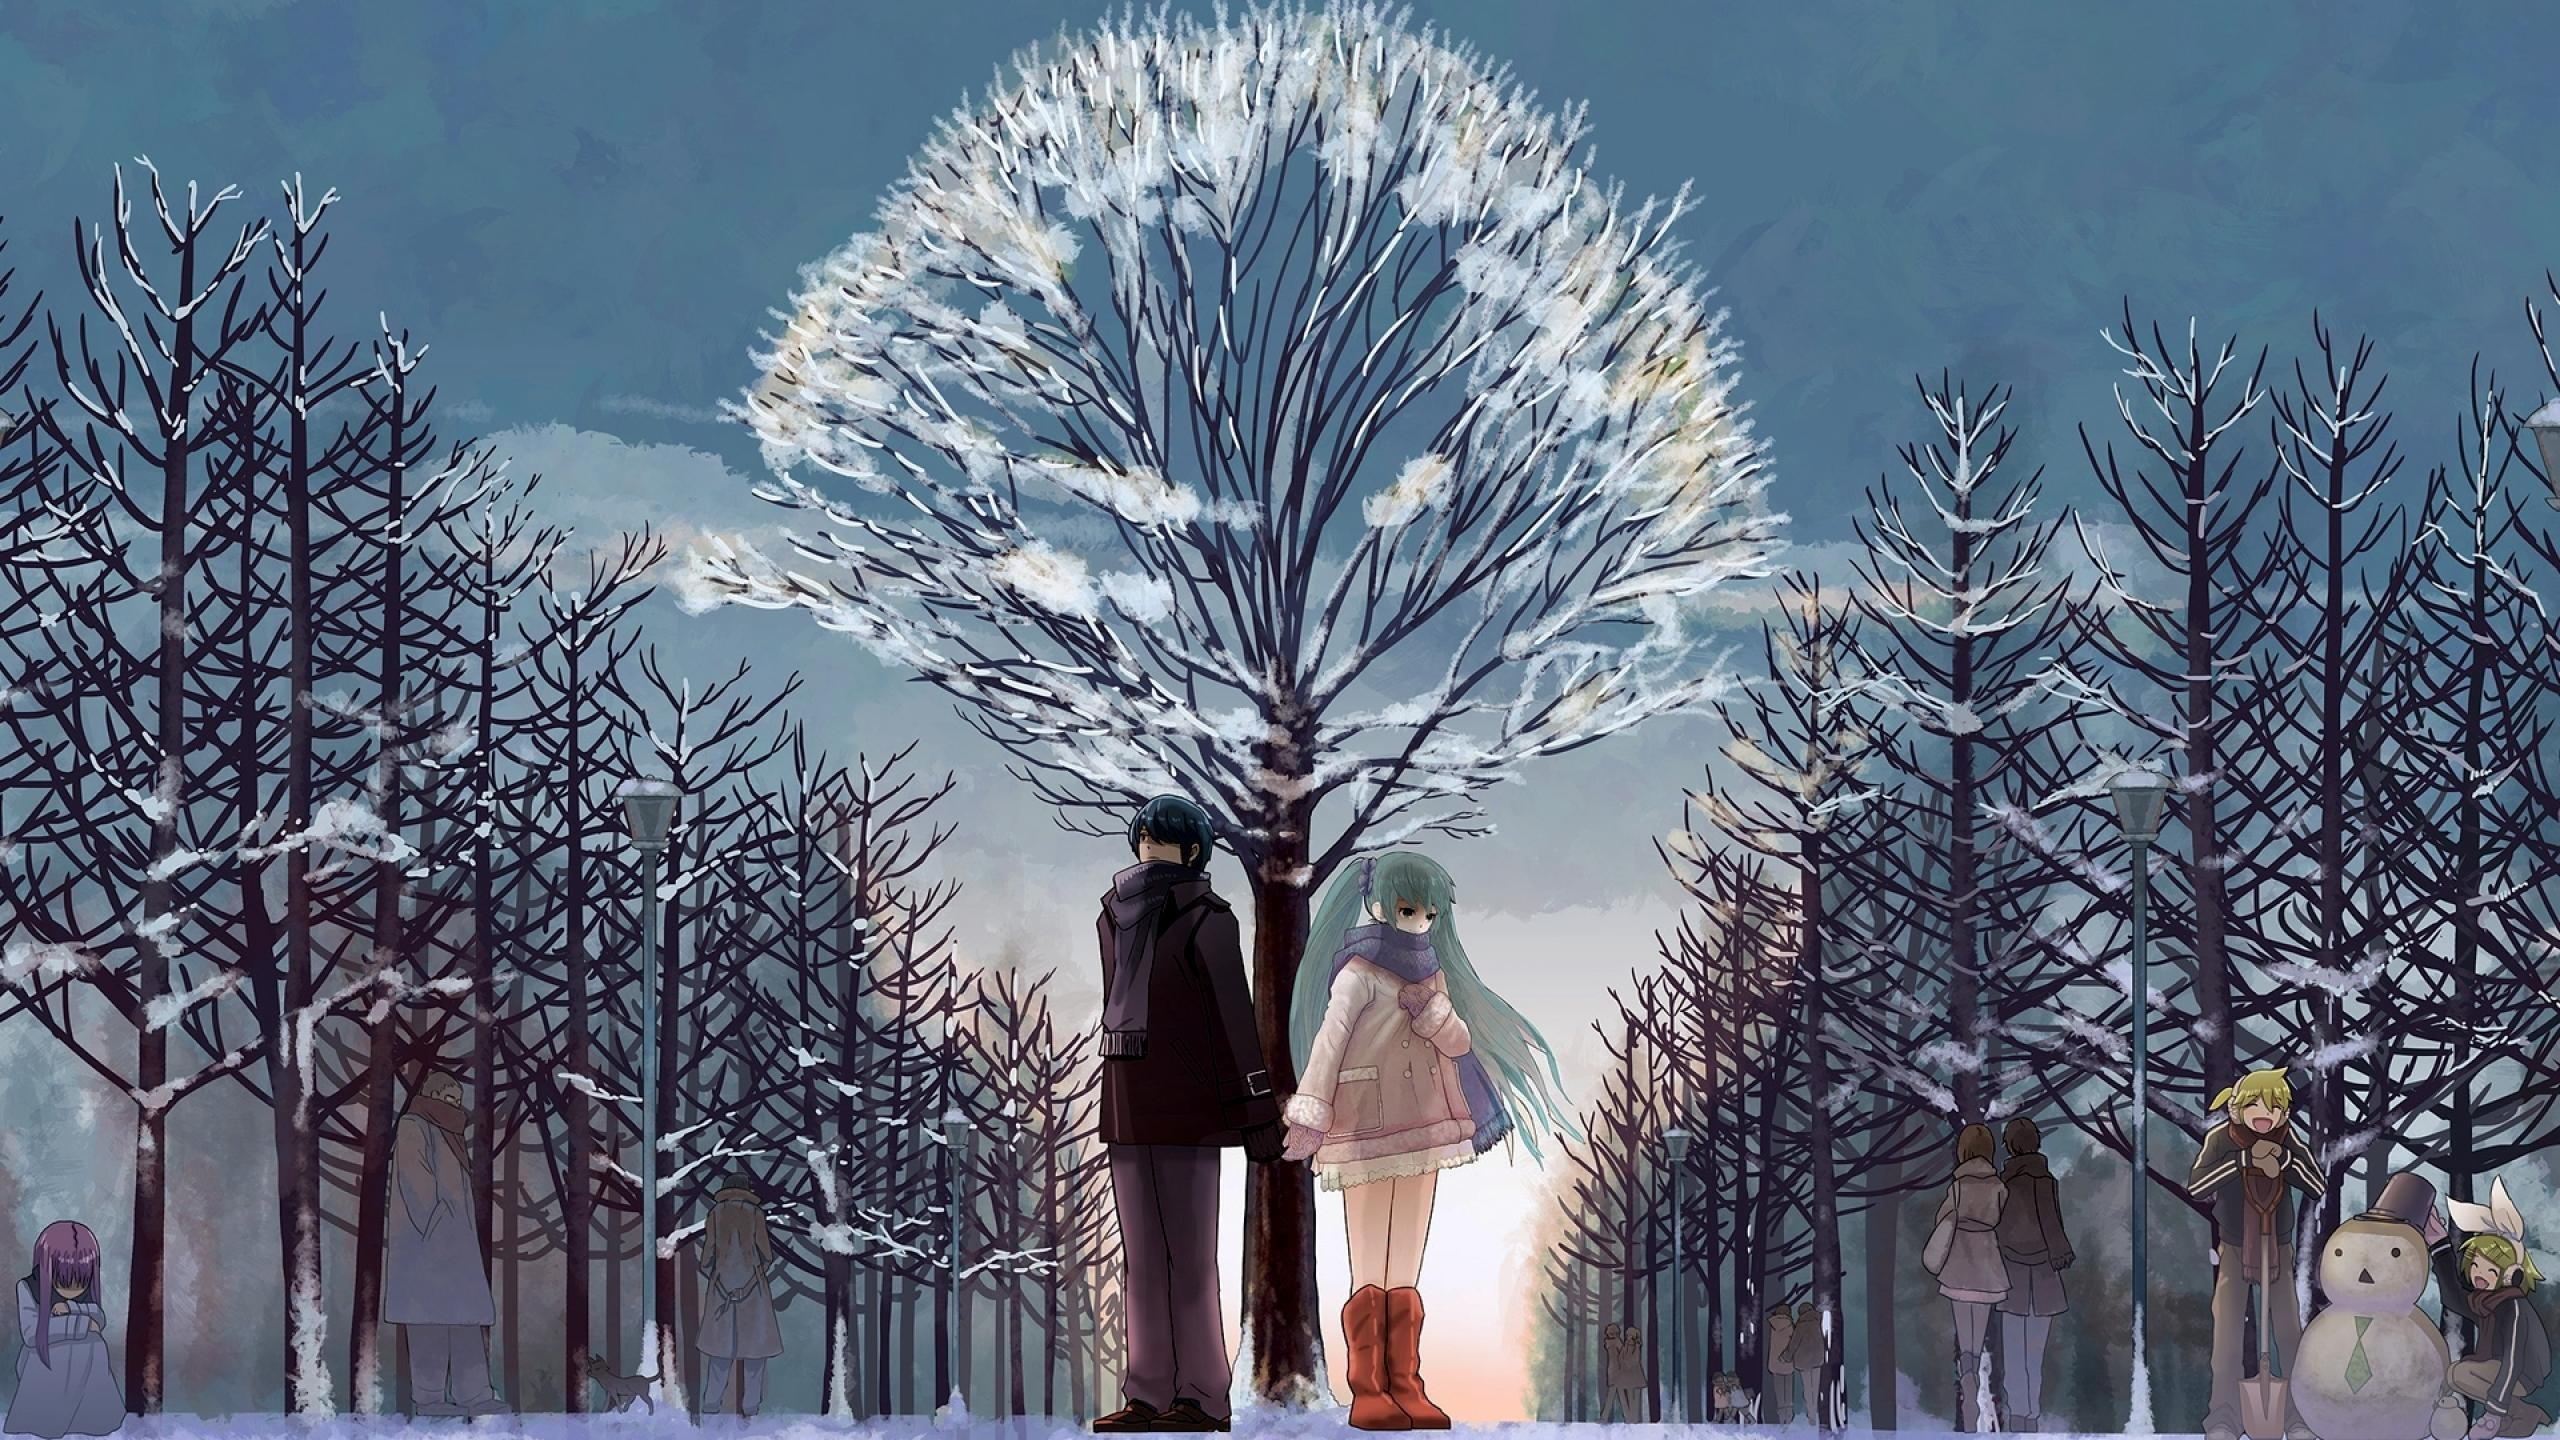 Res: 2560x1440, Animated couple in Christmas snow